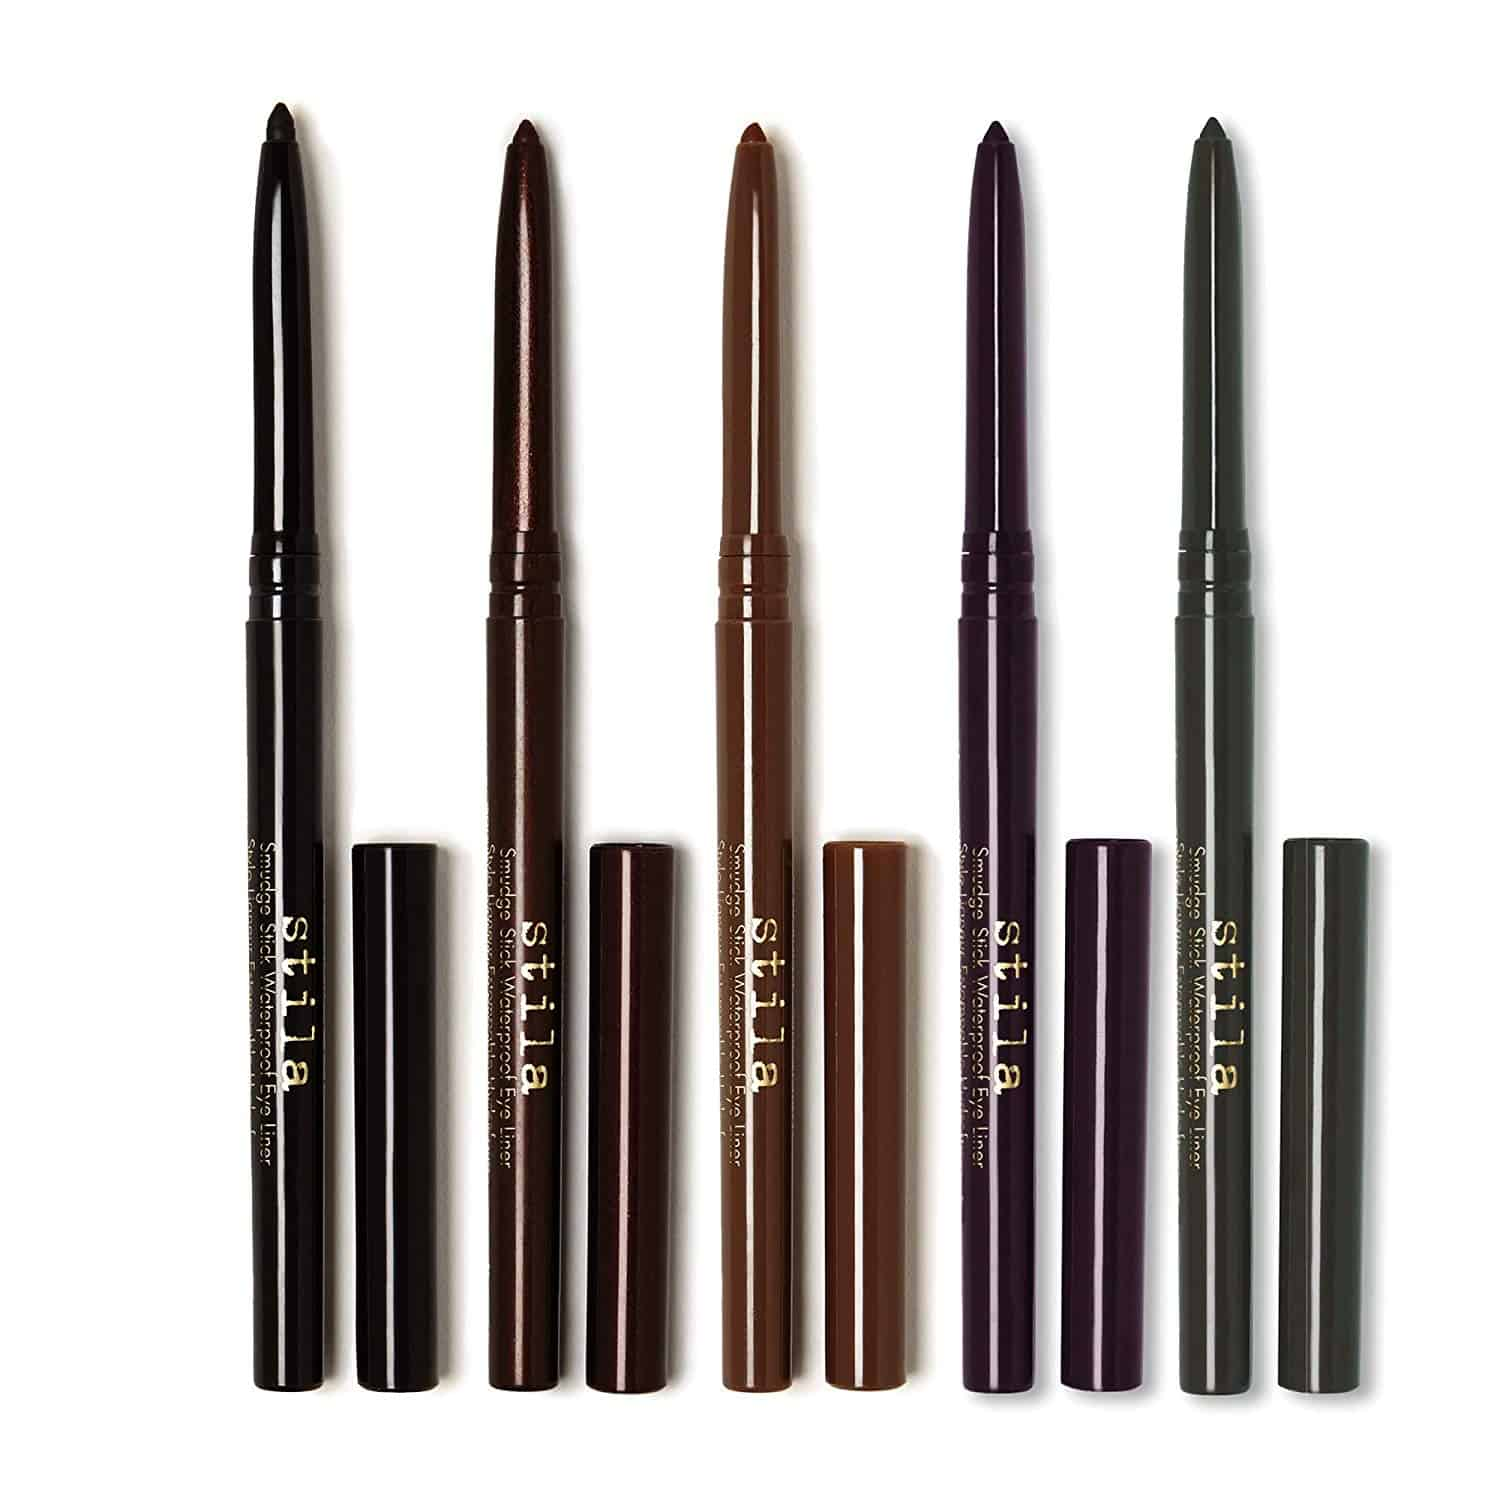 Stila Smudge Stick Waterproof Eye Liner 2